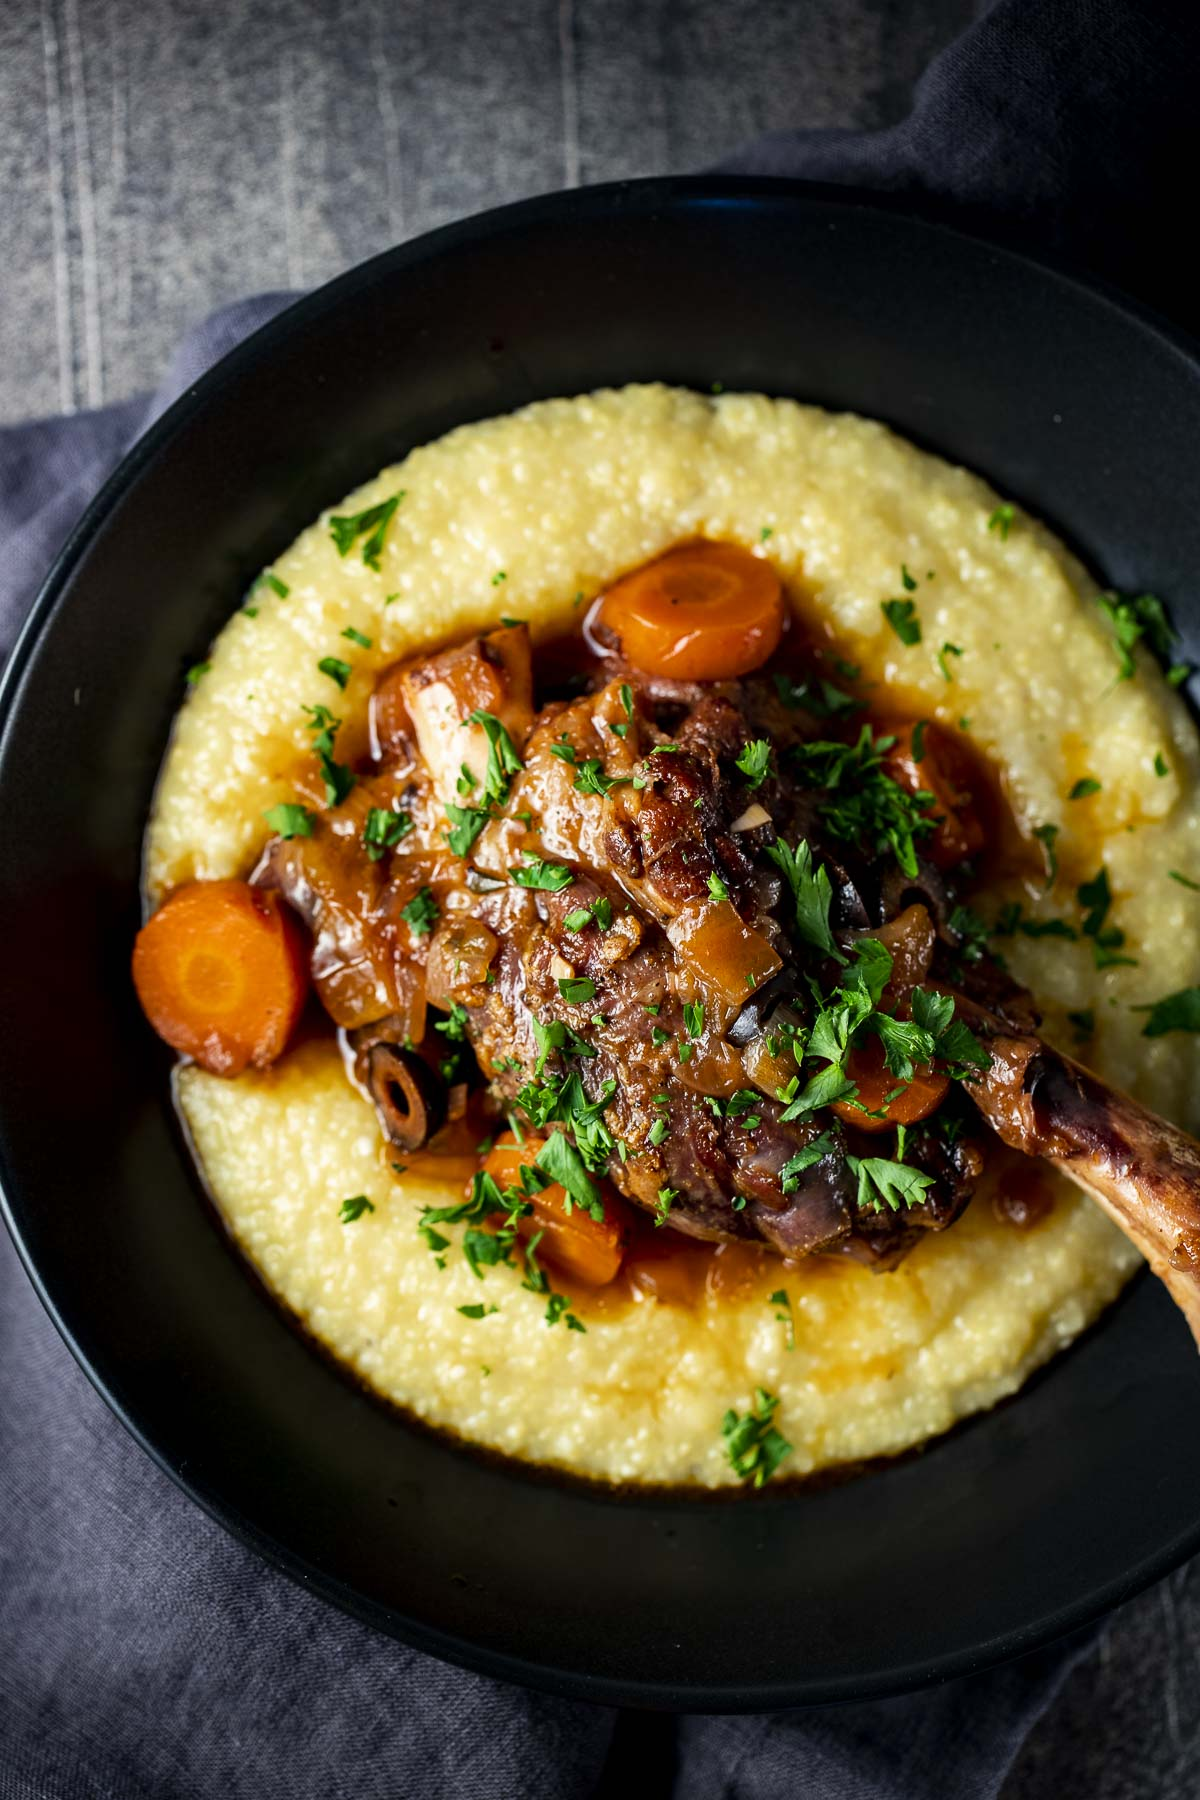 Overhead view of lamb shanks served on top of polenta in a bowl.